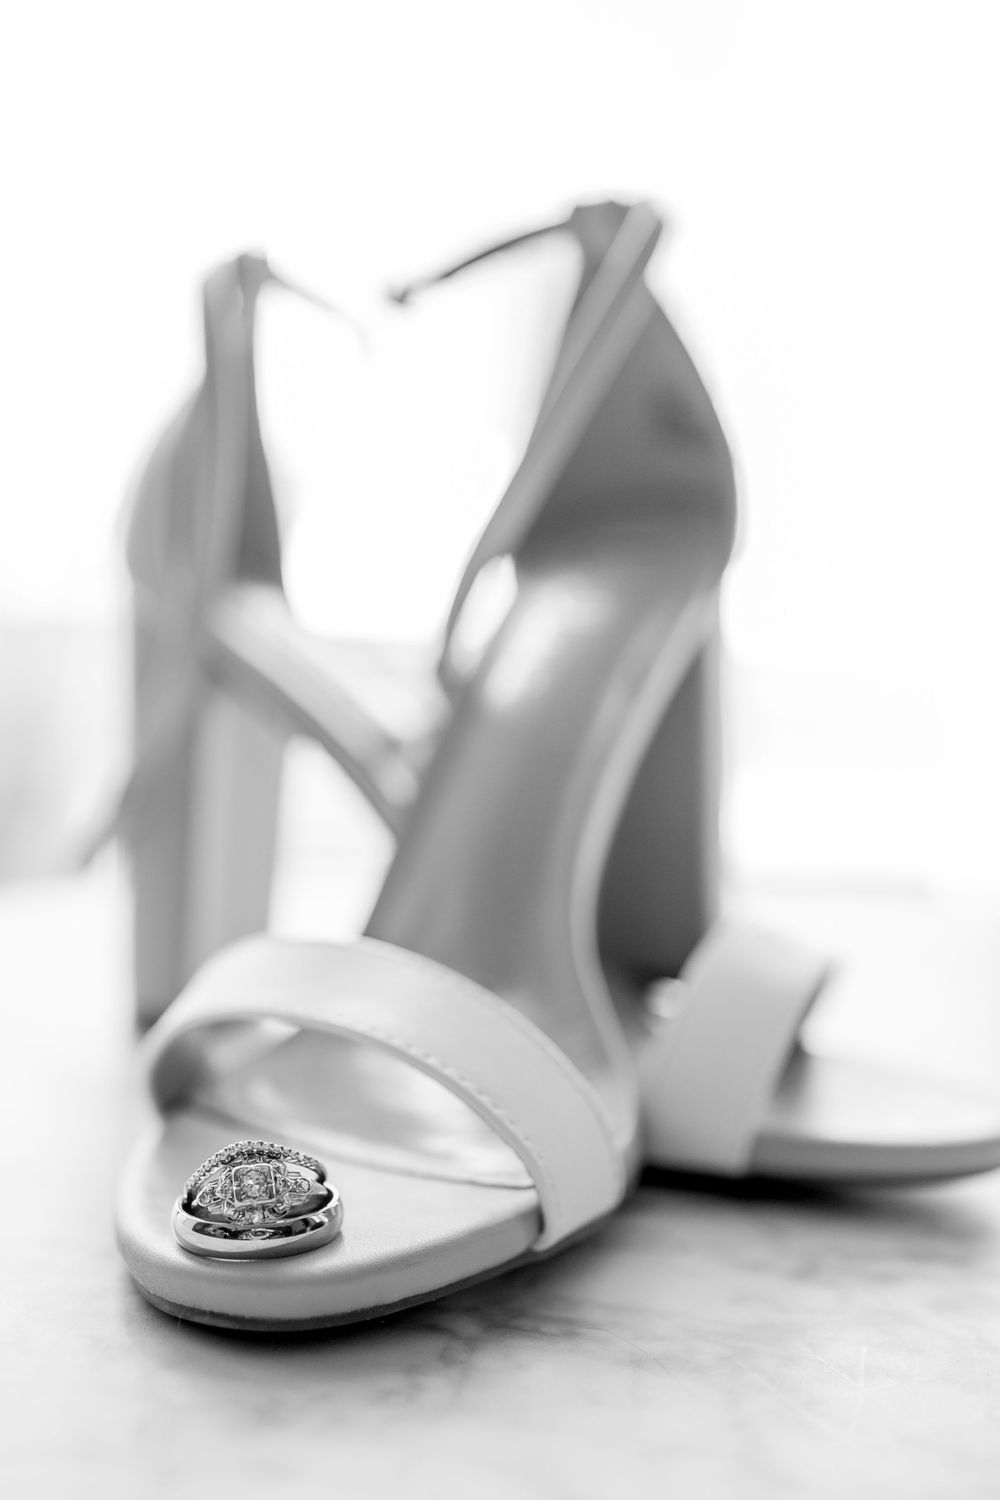 associate photographer photo of wedding rings on bride's shoes